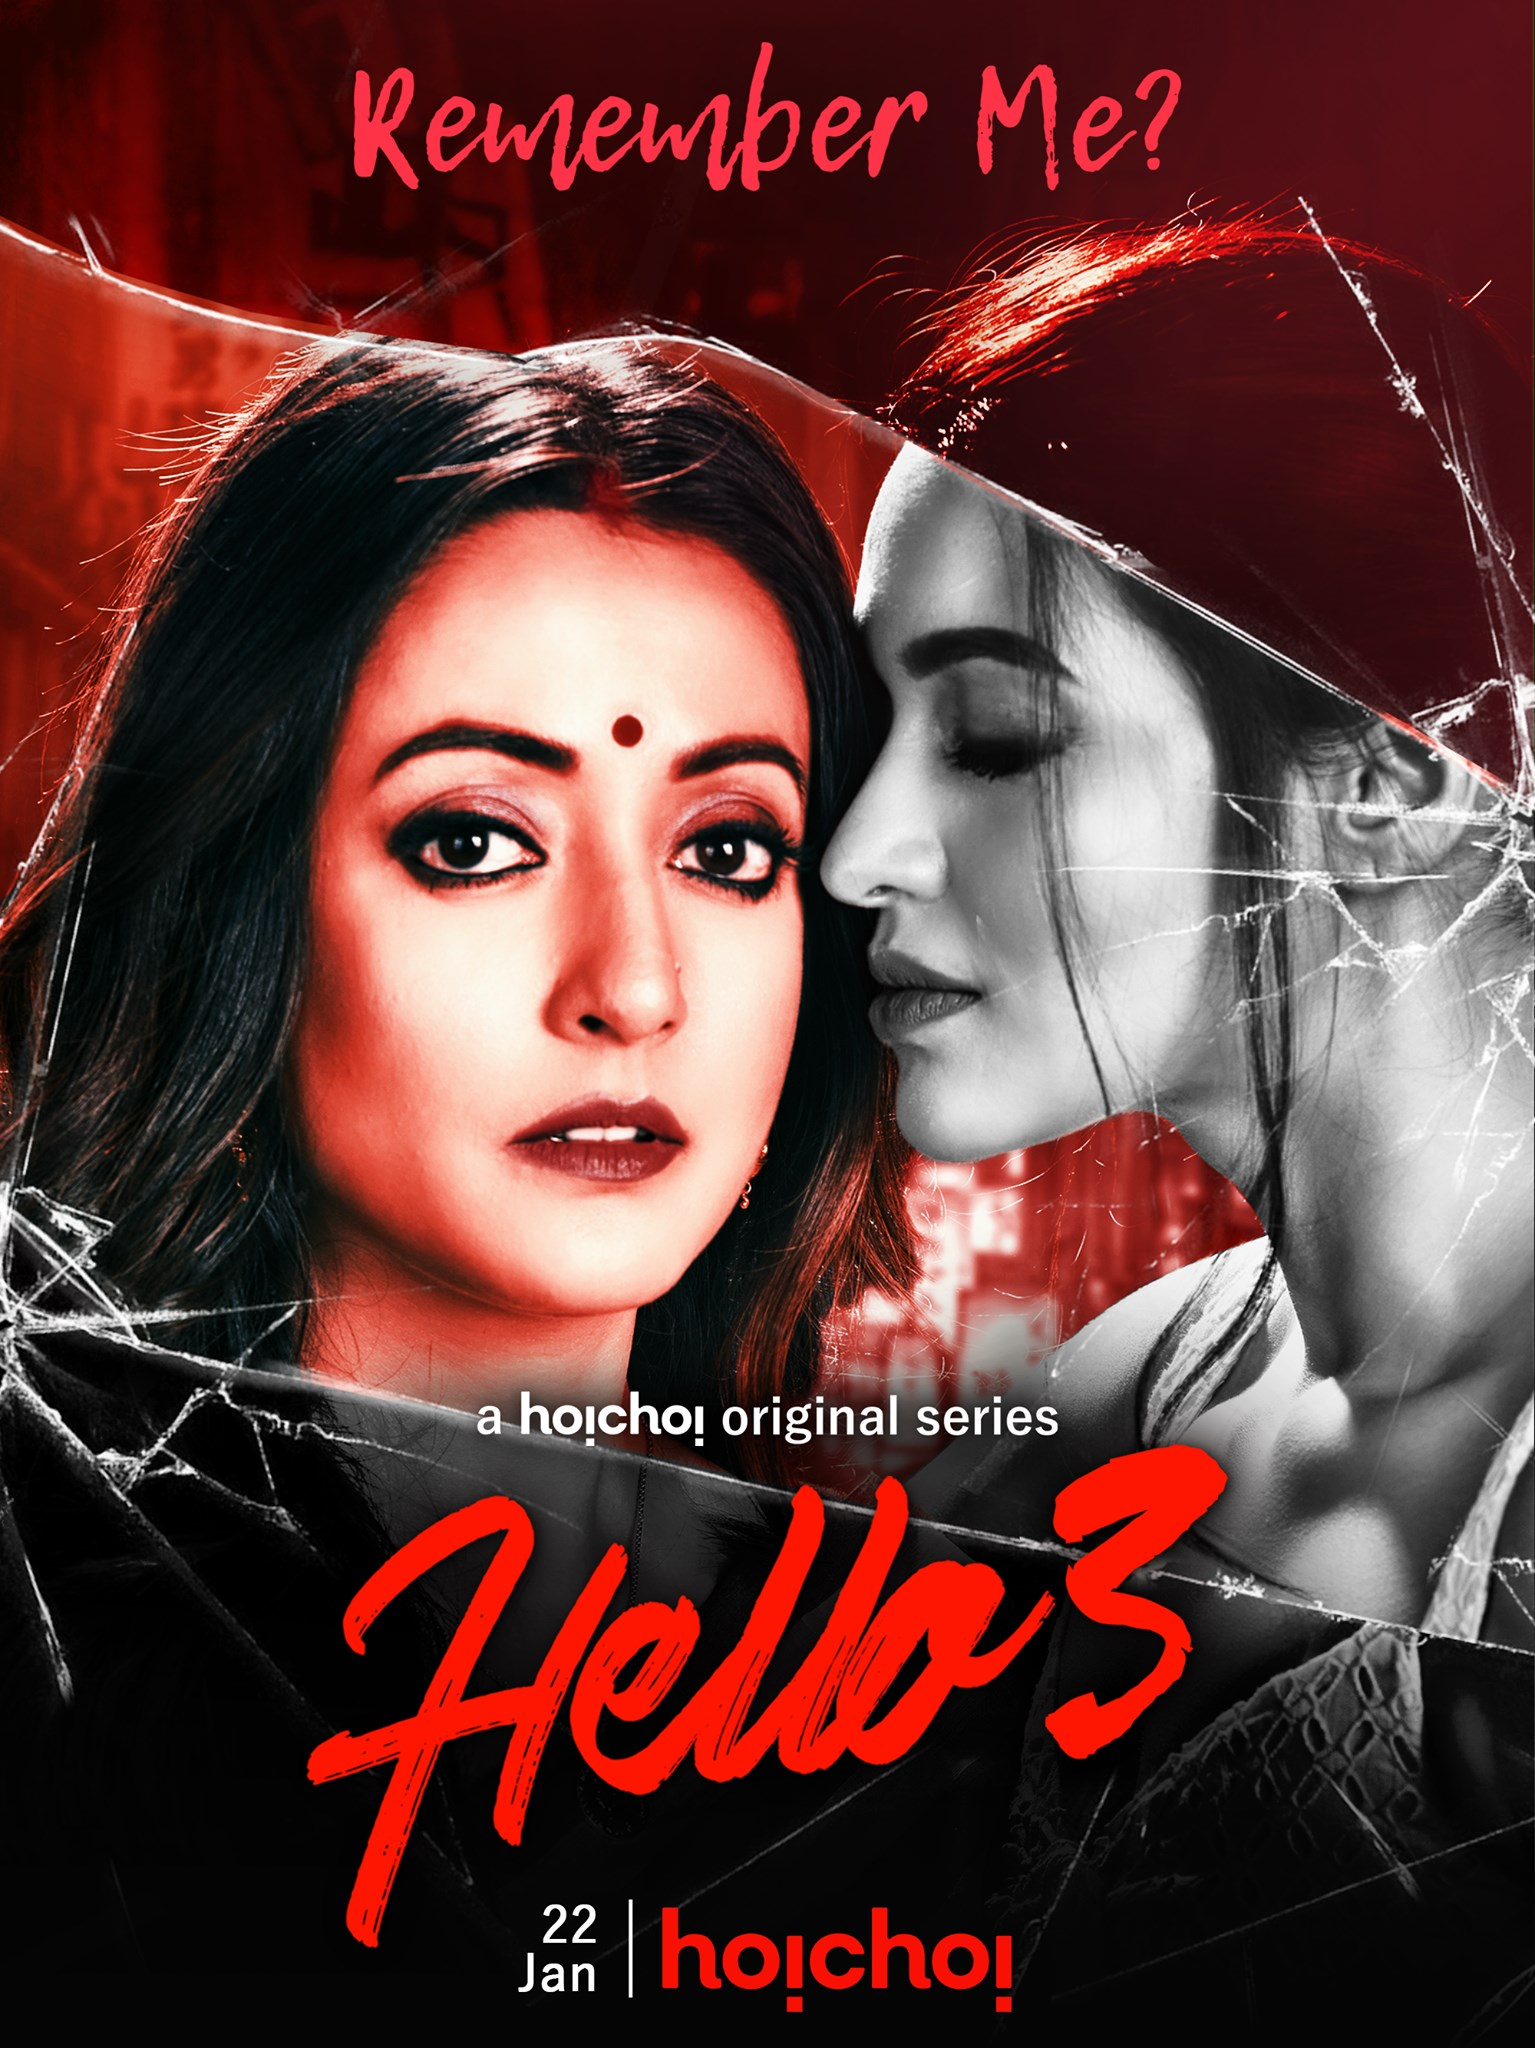 Hello 3 2021 S03 Hoichoi Originals Bengali Web Series 1080p HDRip 1.9GB Download